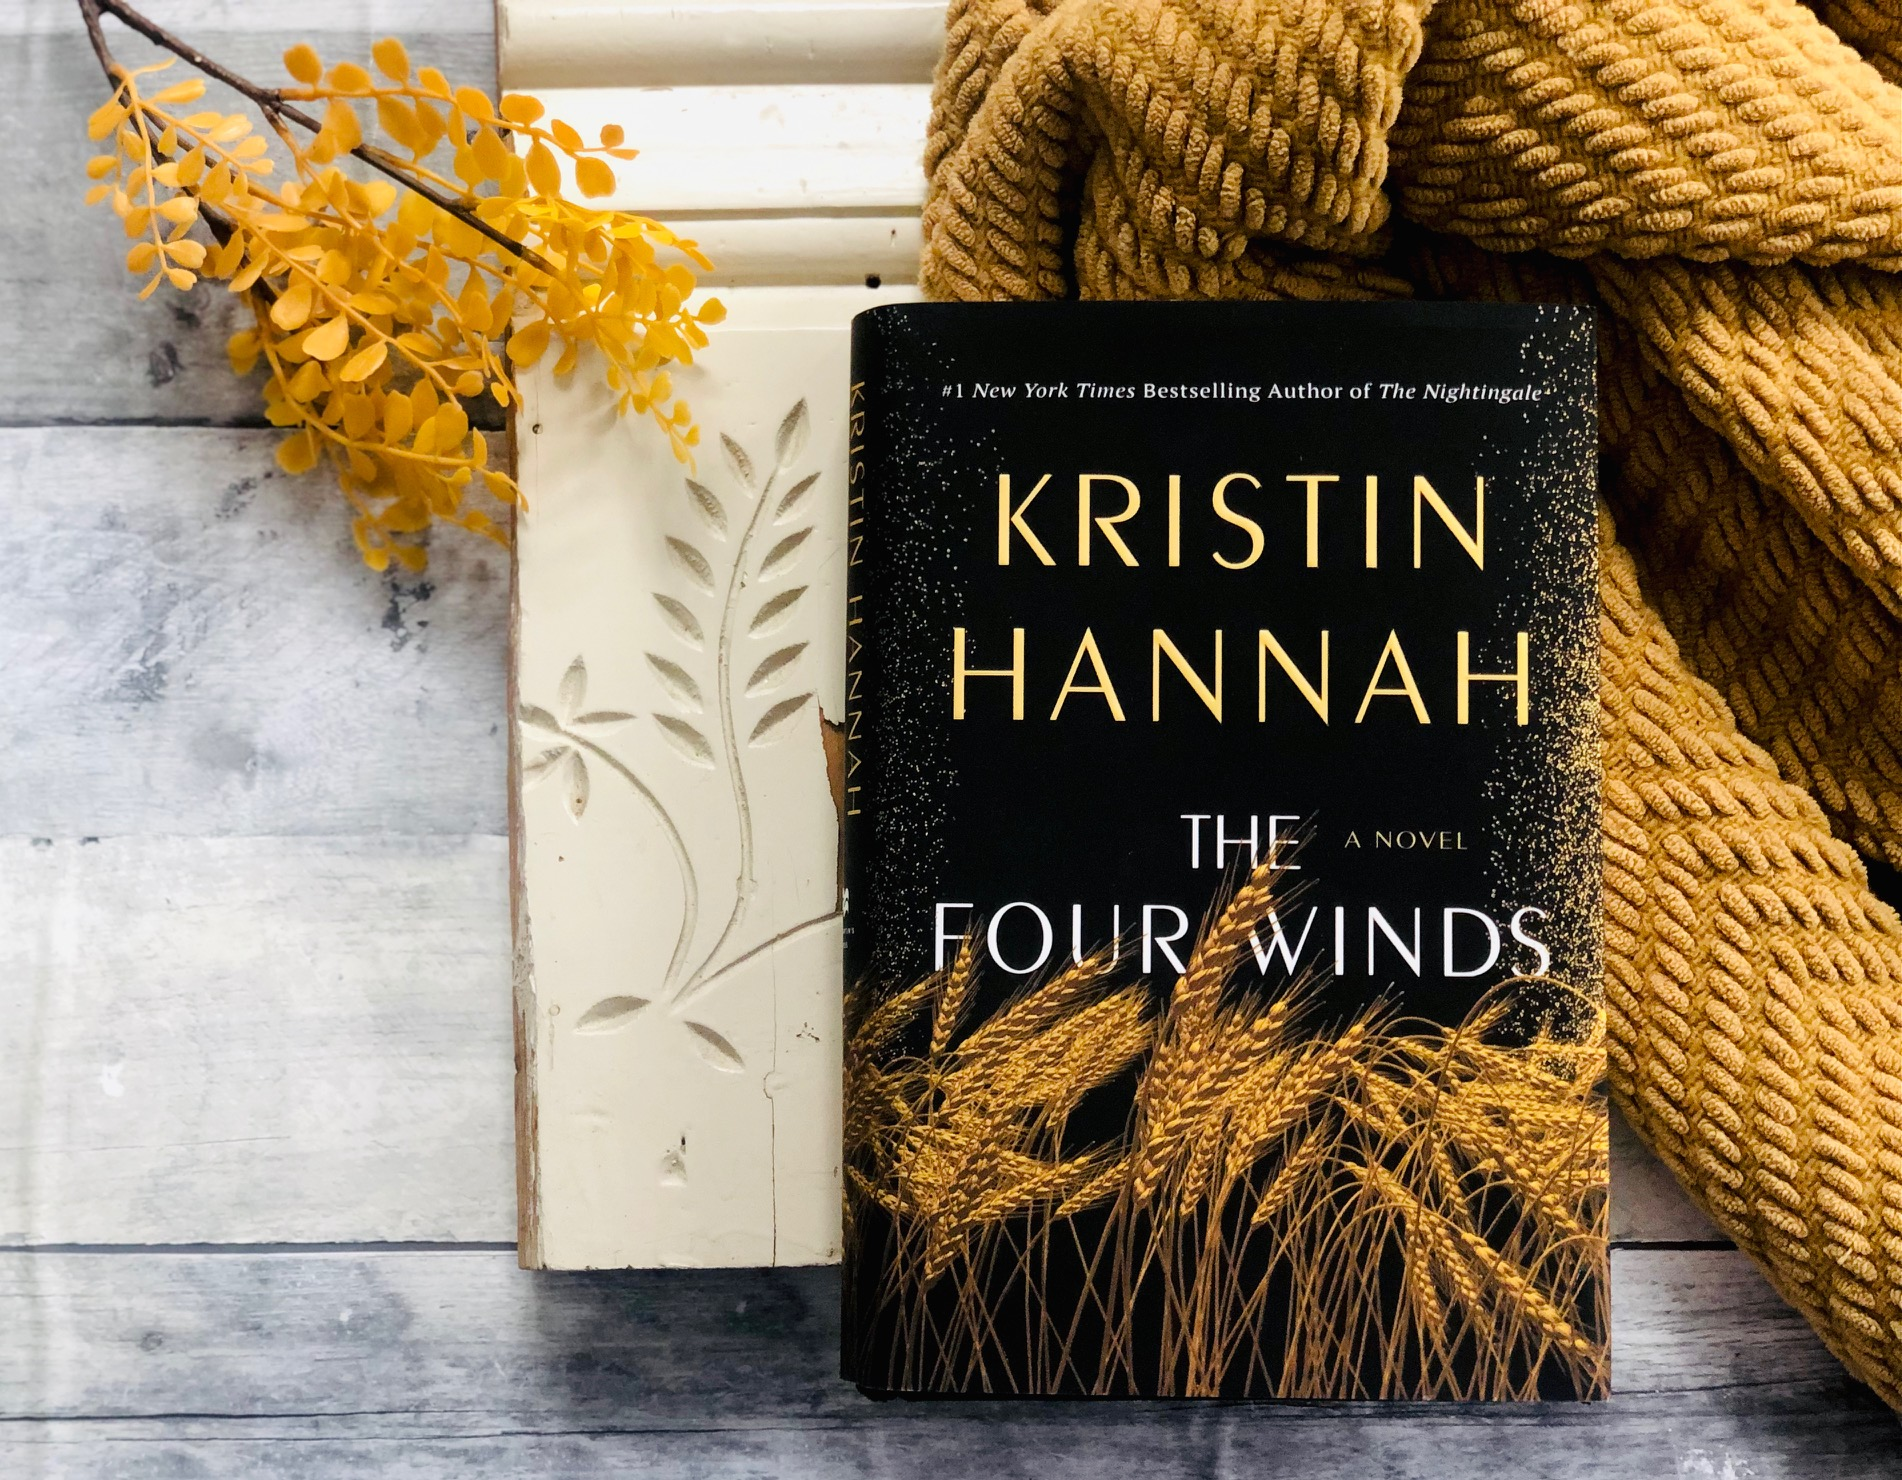 Virtual Reading Cafe Book Club: The Four Winds by Kristin Hannah